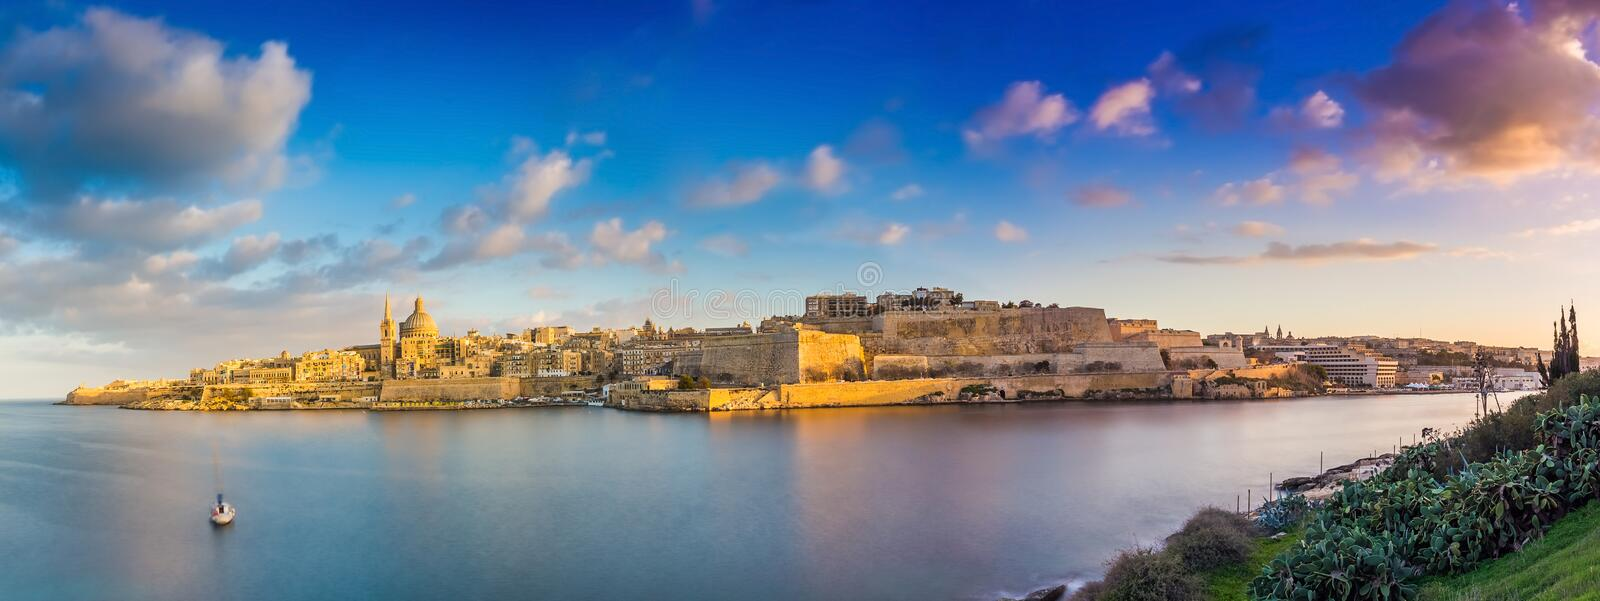 Valletta, Malta - Panoramic skyline view of the ancient city of Valletta and Sliema at sunrise shot from Manoel island at spring stock image